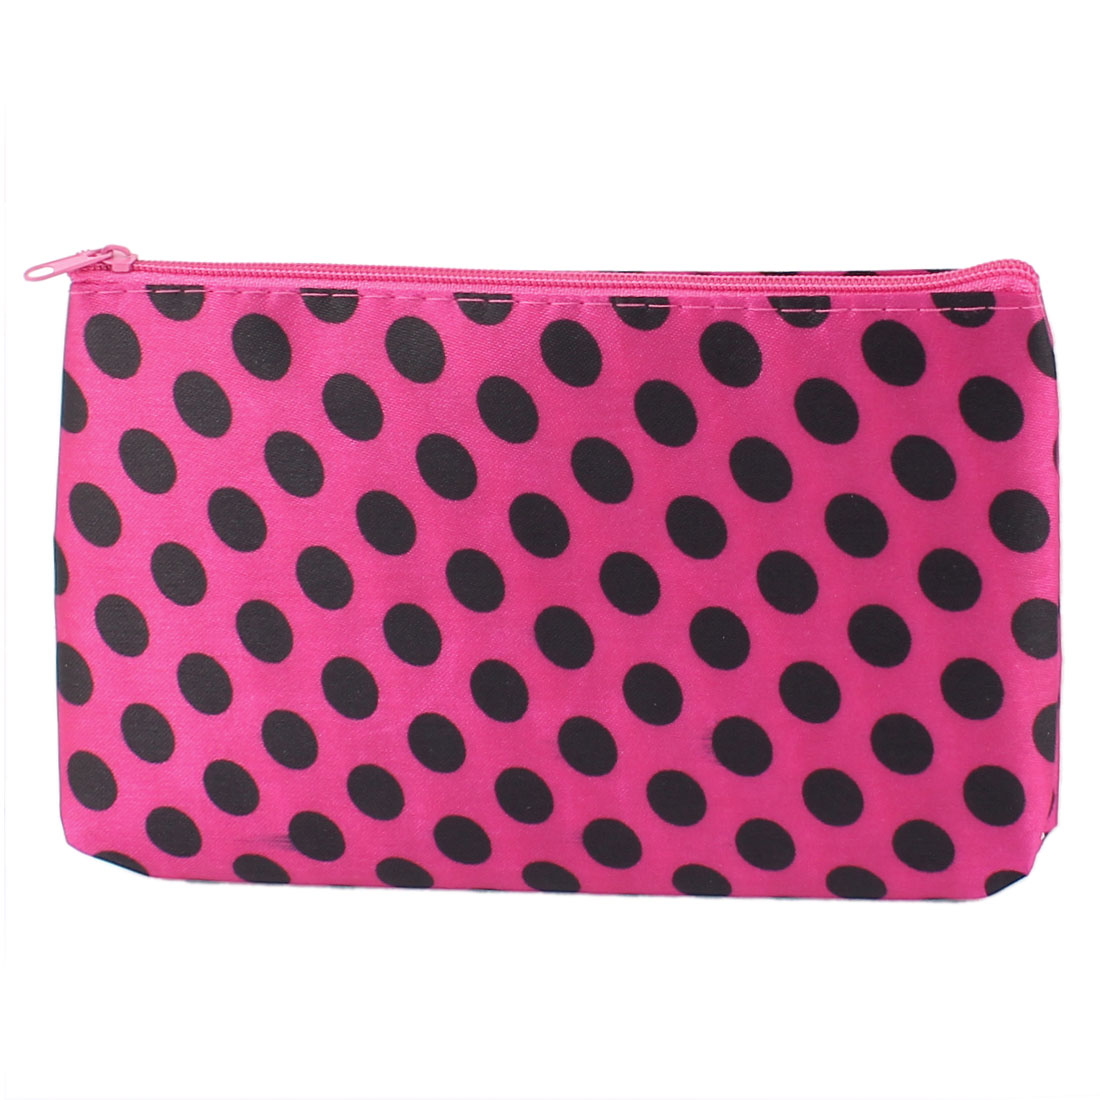 Lady Dots Pattern Makeup Cosmetic Bag Organizer Red Black